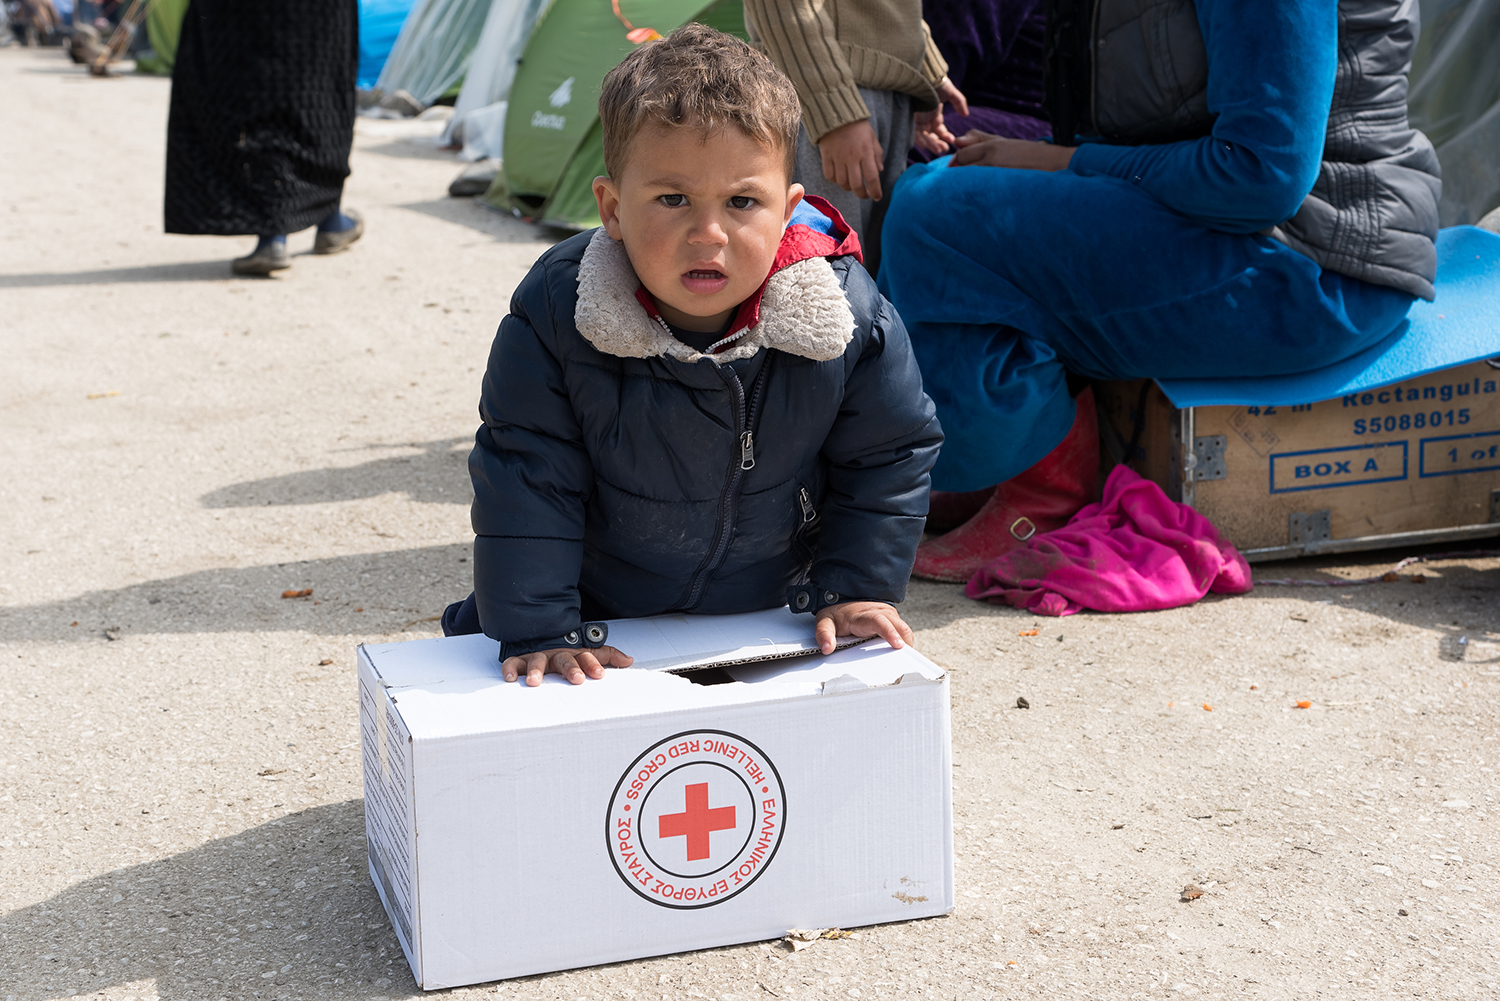 Worried young boy in refugee camp leans on Red Cross relief box.